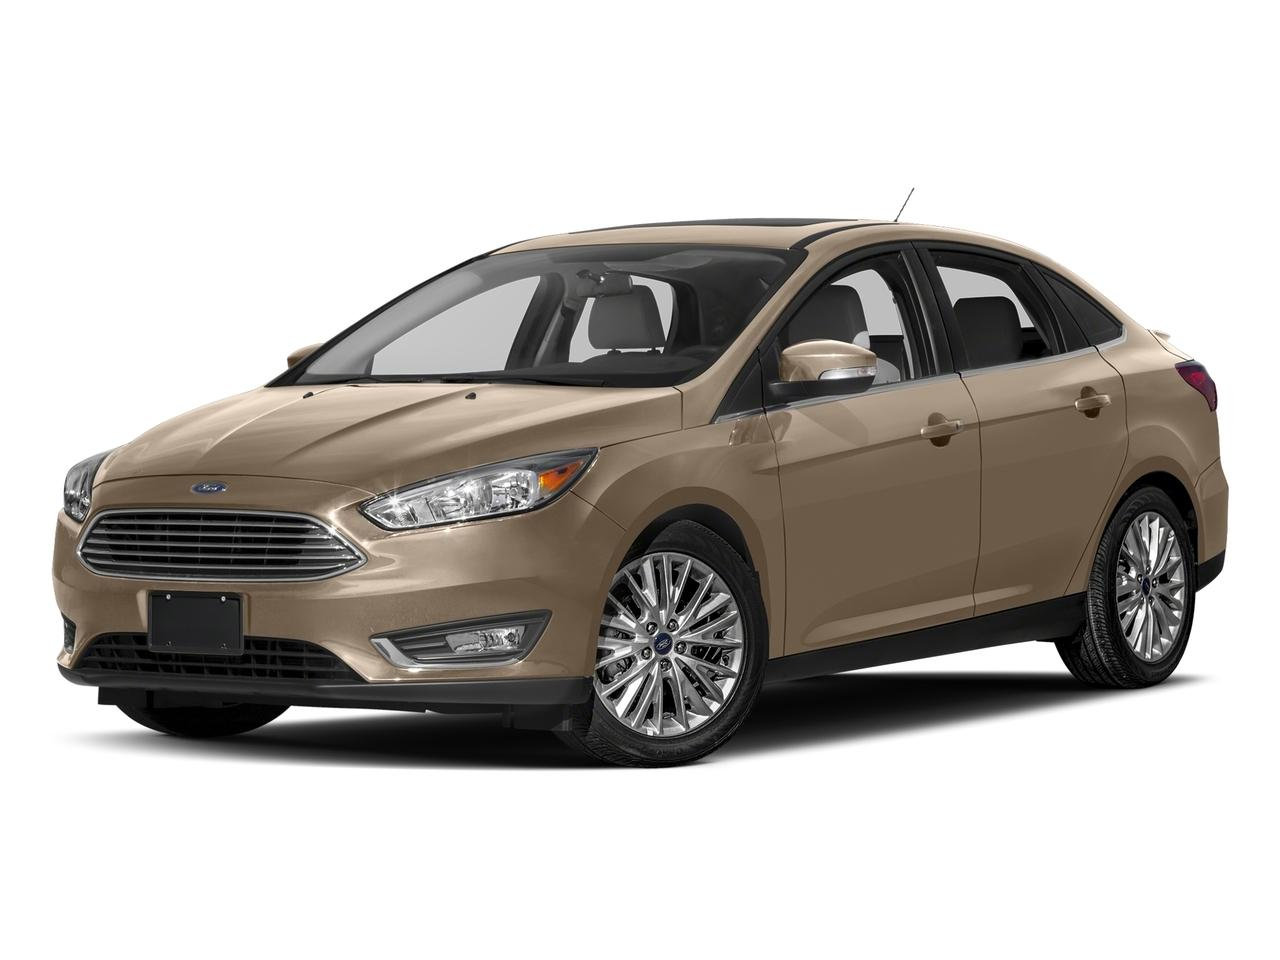 2017 Ford Focus Vehicle Photo in Colorado Springs, CO 80920